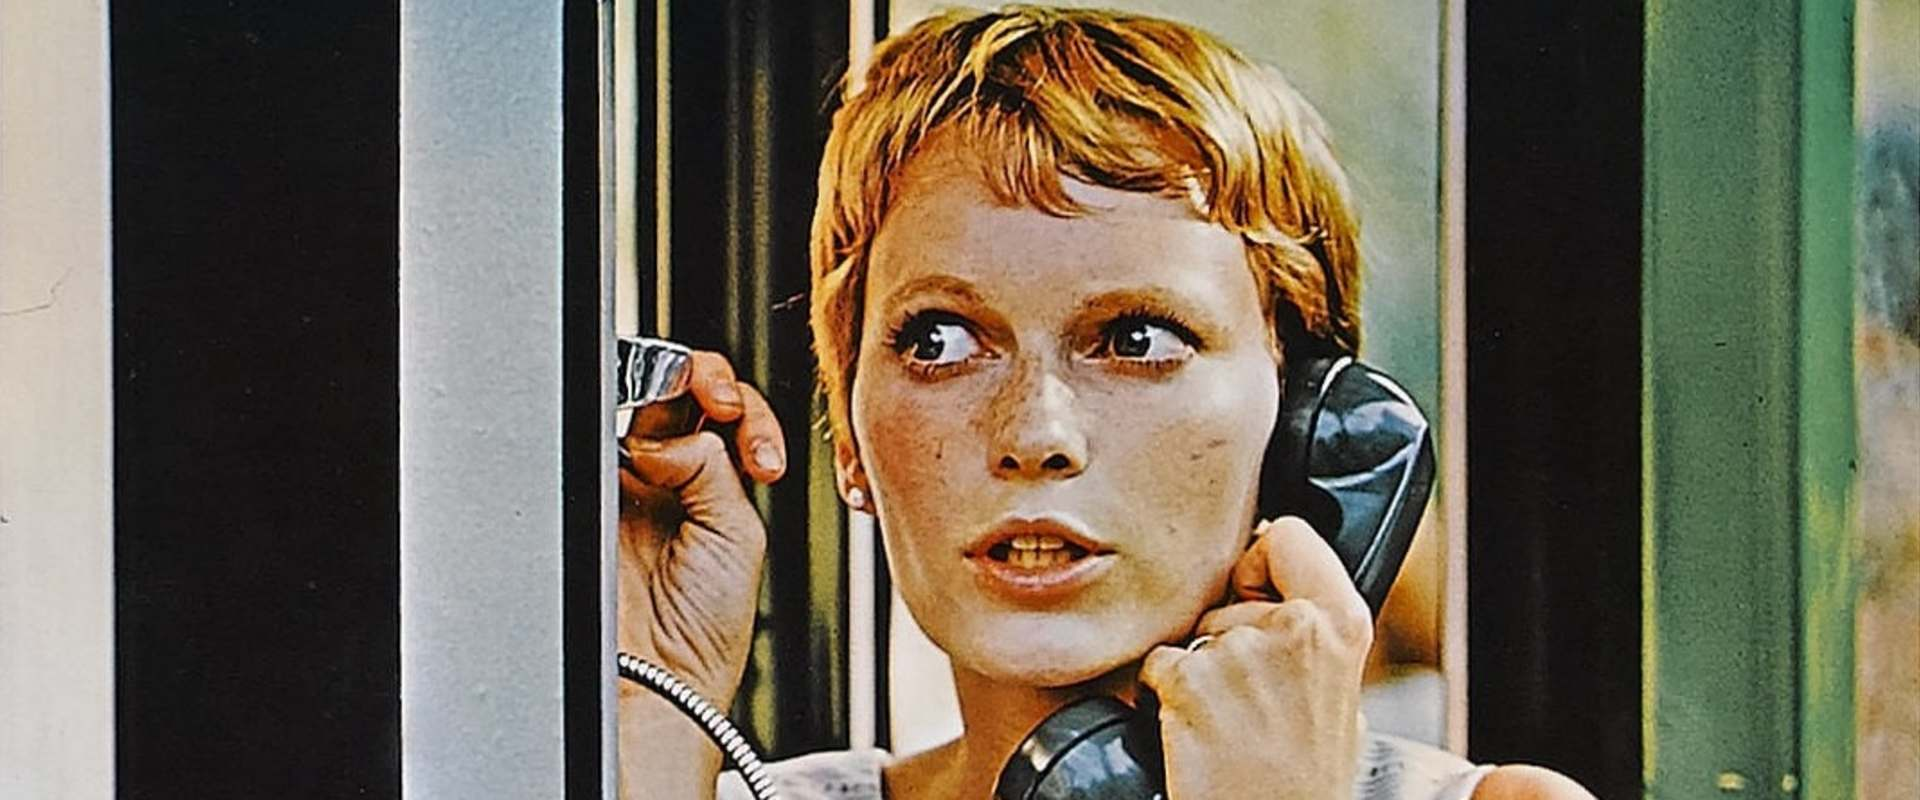 Rosemary's Baby background 2